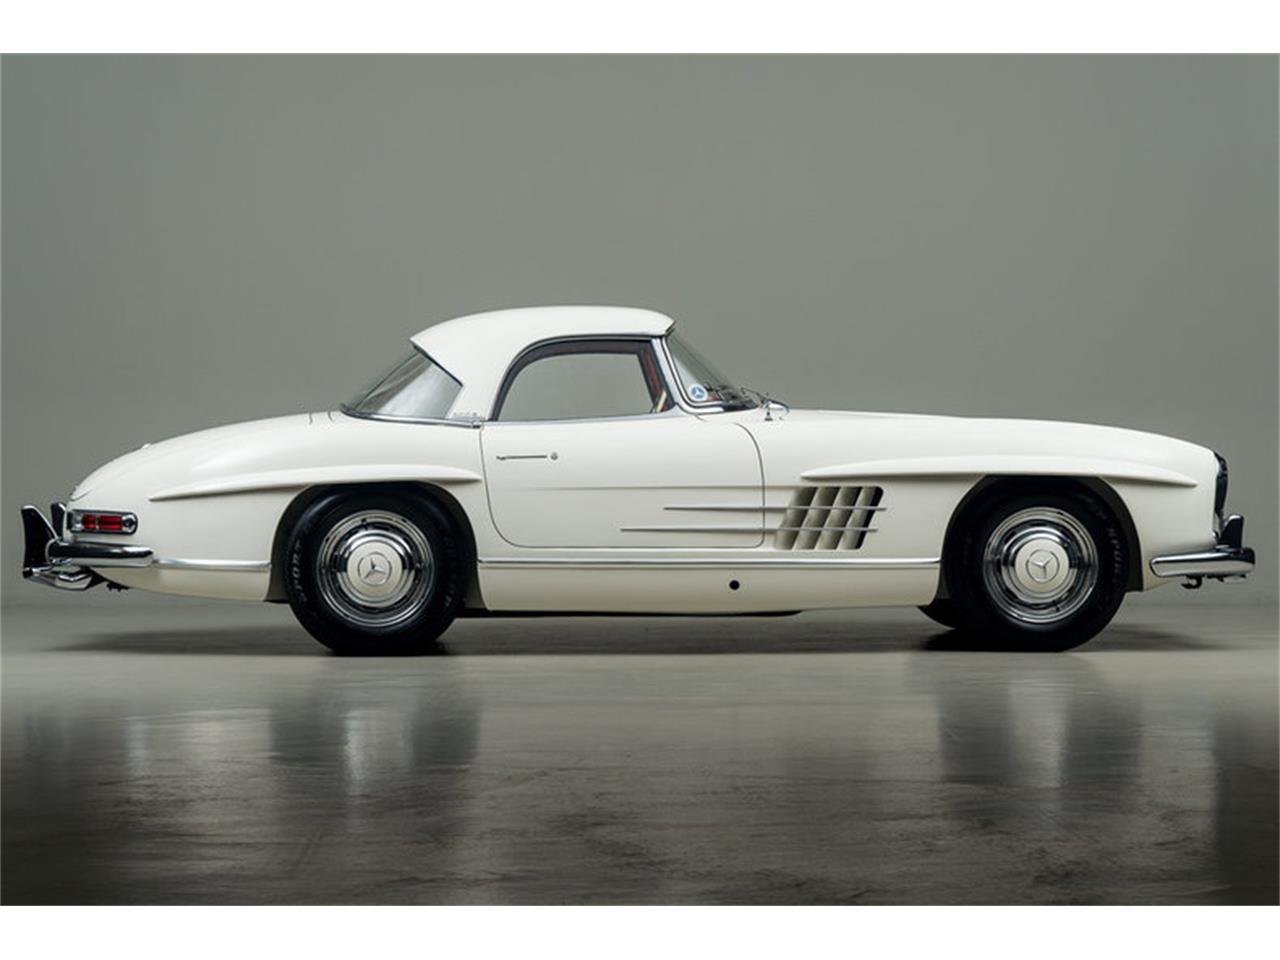 Large Picture of '63 Mercedes-Benz 300SL Roadster located in Scotts Valley California Auction Vehicle - EFPZ